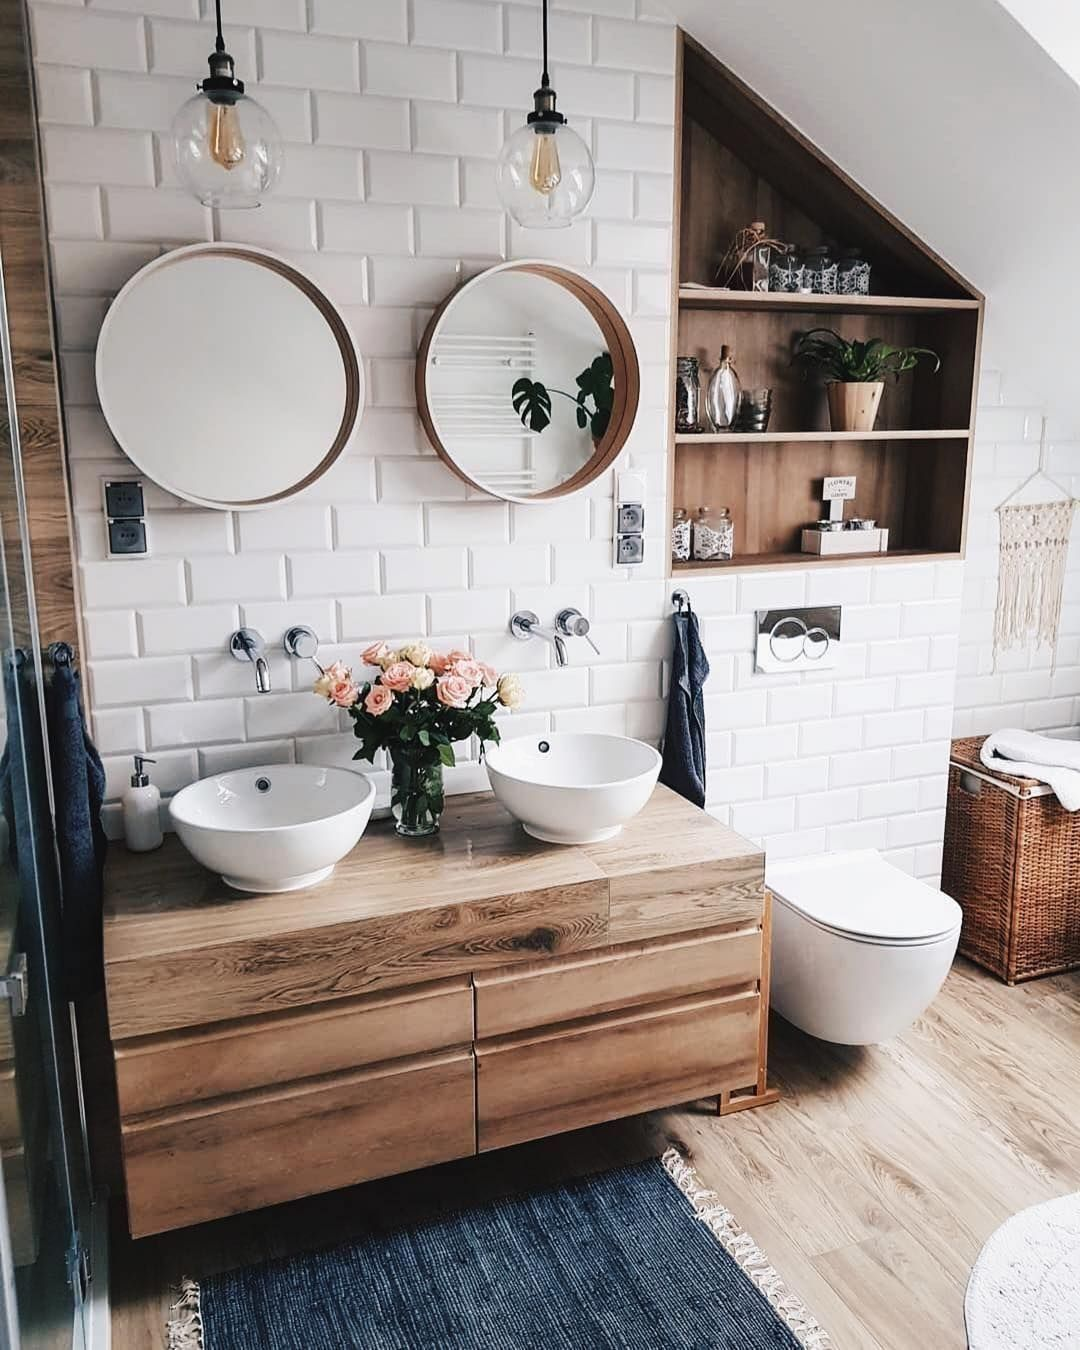 25 Tranquil Scandinavian Bathroom Decor To Get Rid Of Daily Stress - N15